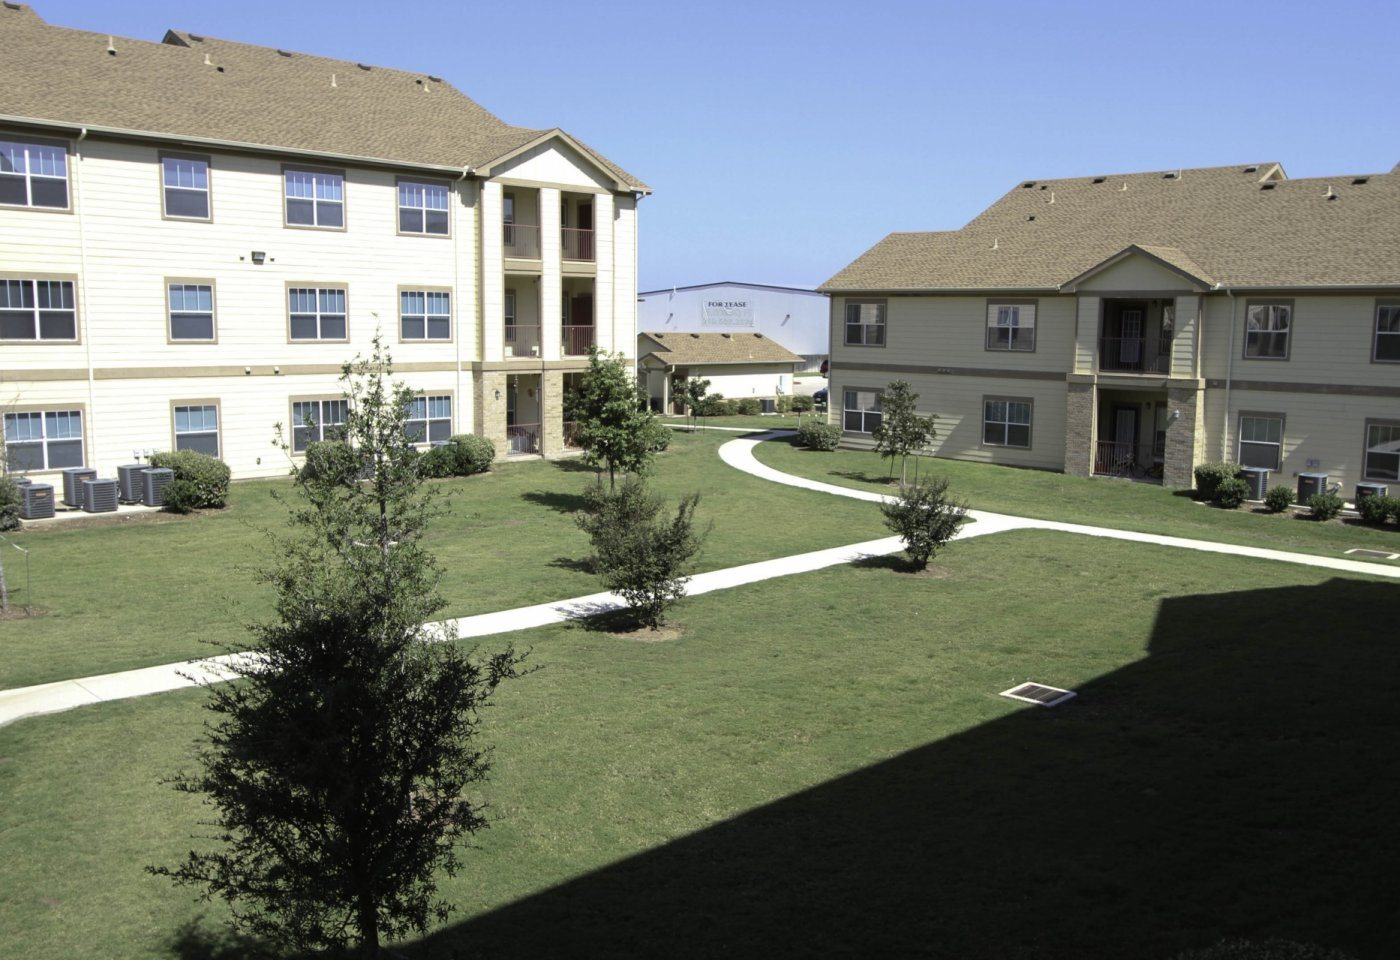 Grass Area and apt buildings La Sierra Apartments For Rent l New Braunfels TX